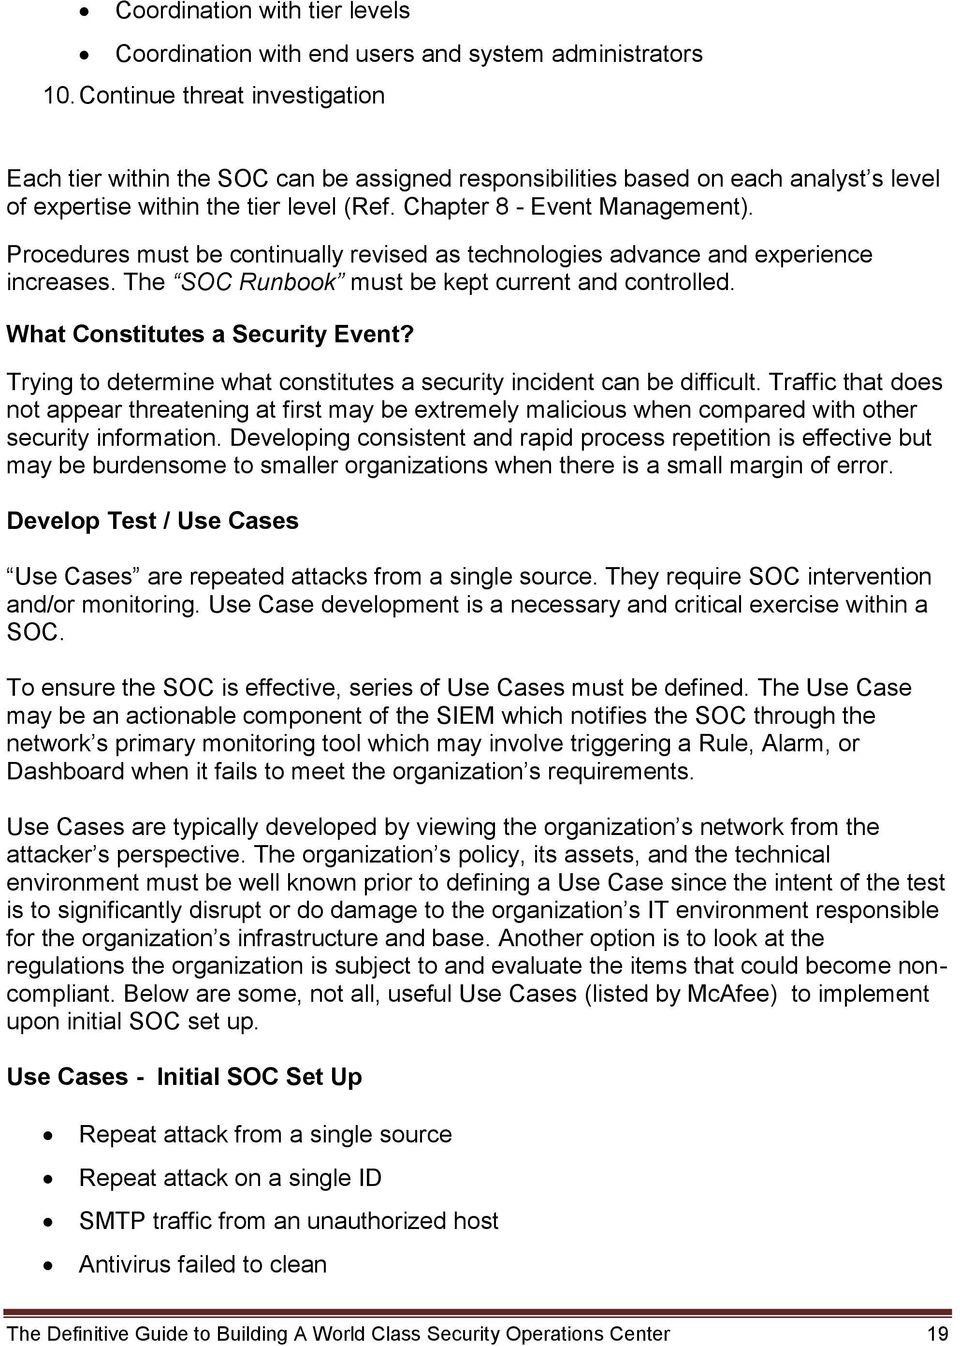 The Definitive Guide to Building A World Class Security Operations